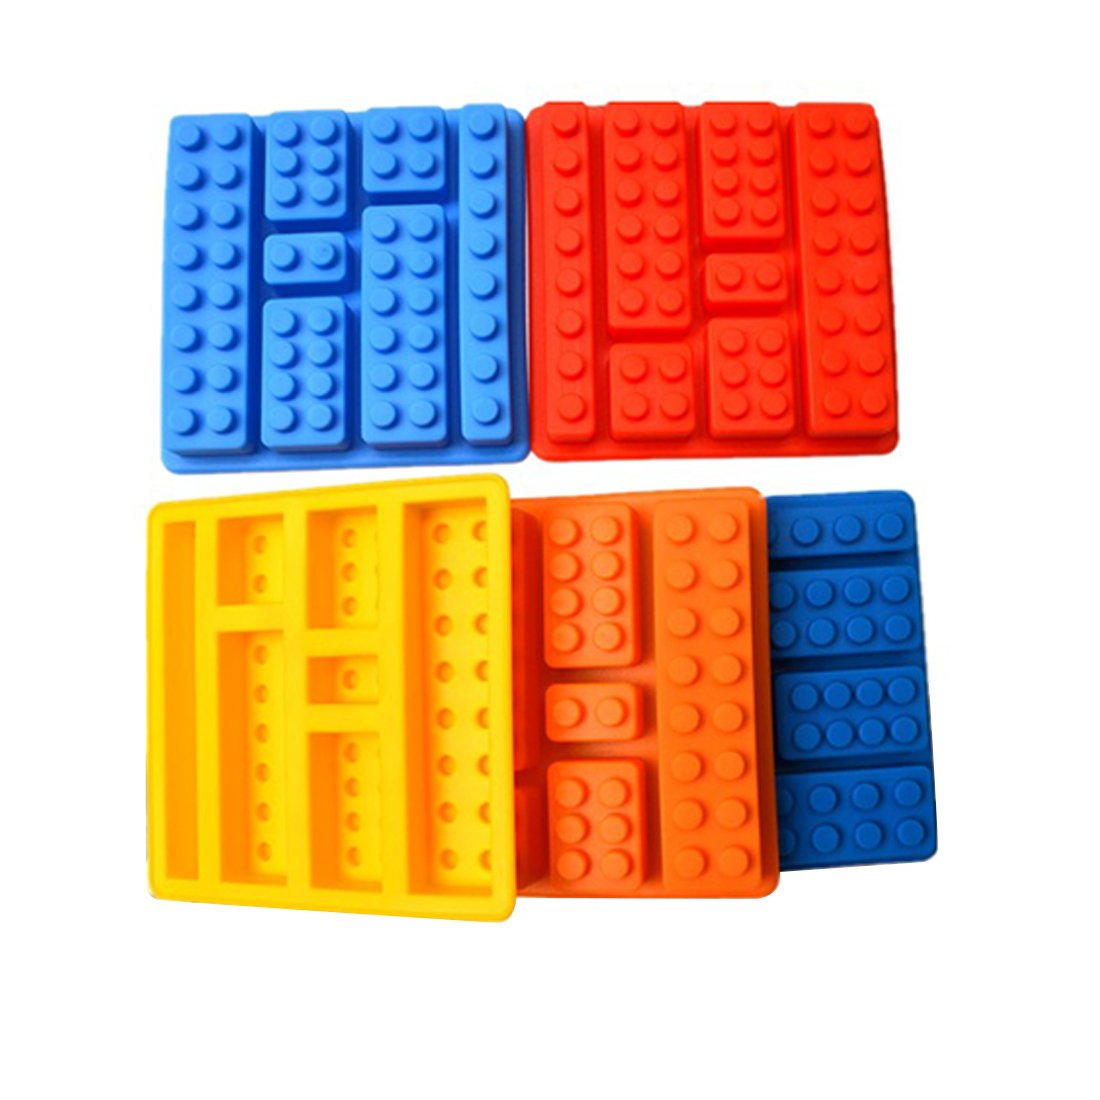 Building Blocks Shaped Silicone Ice Cube Tray Mold